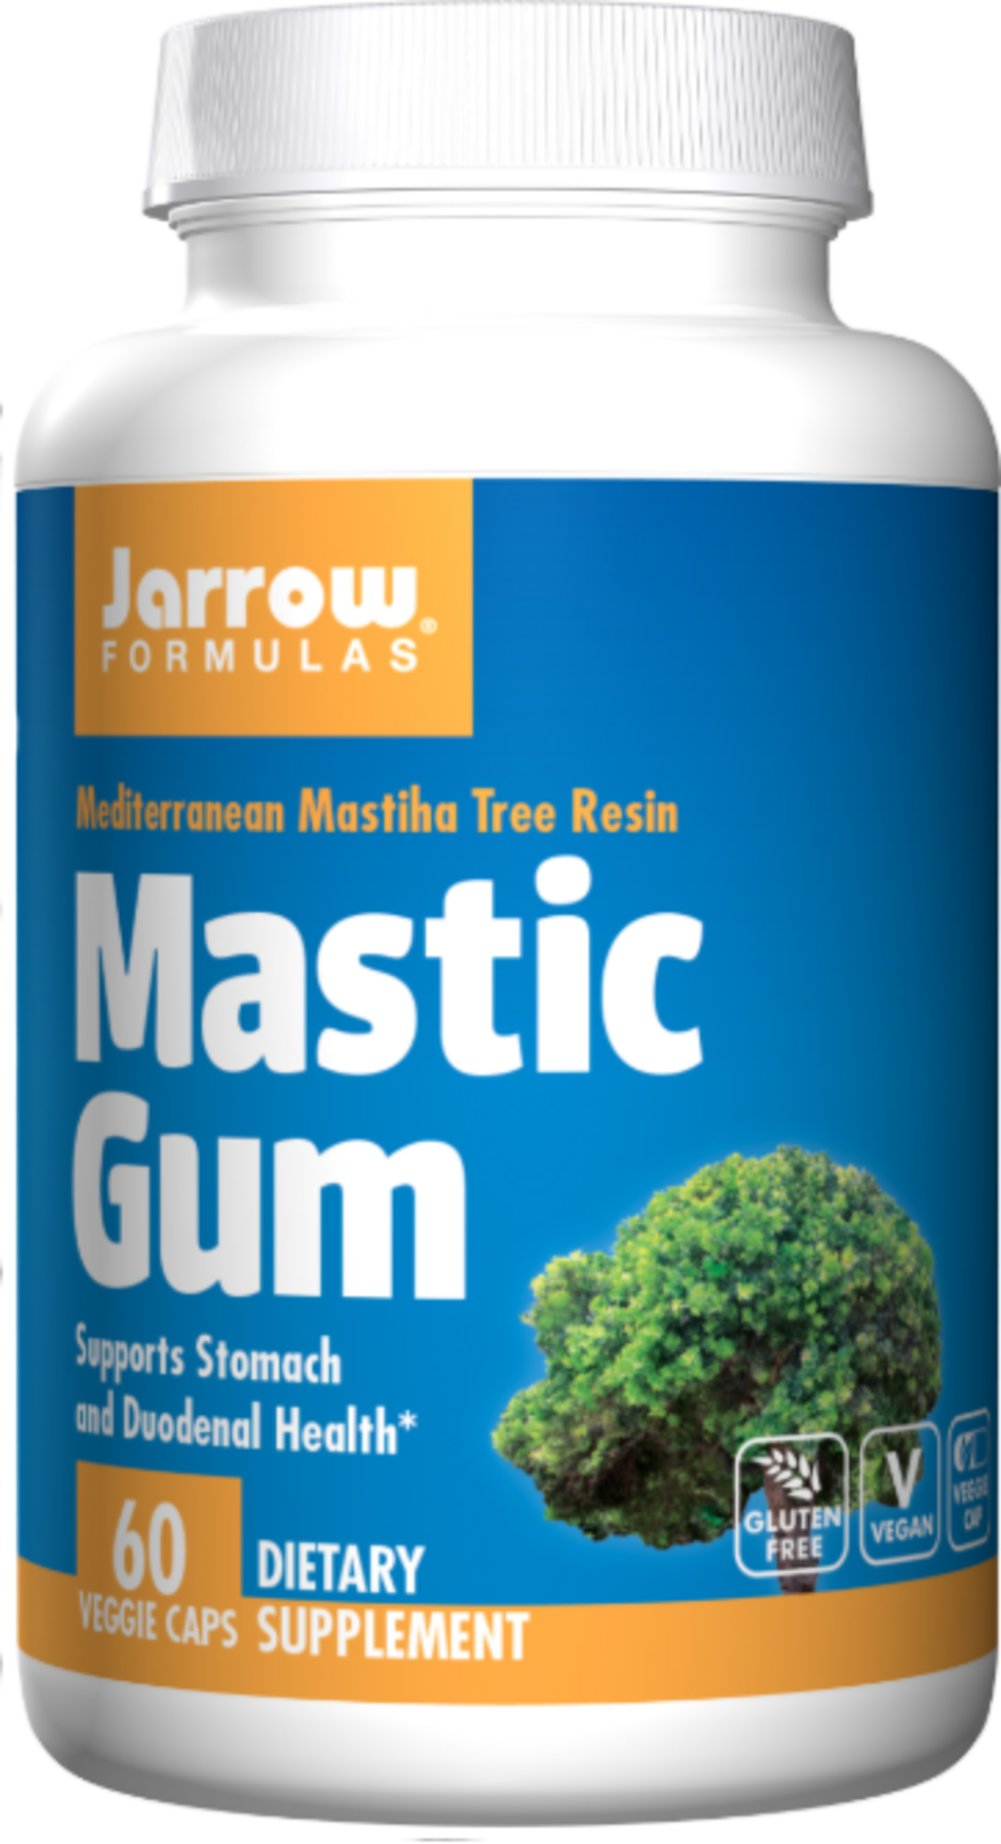 Mastic Gum 500 mg Thumbnail Alternate Bottle View